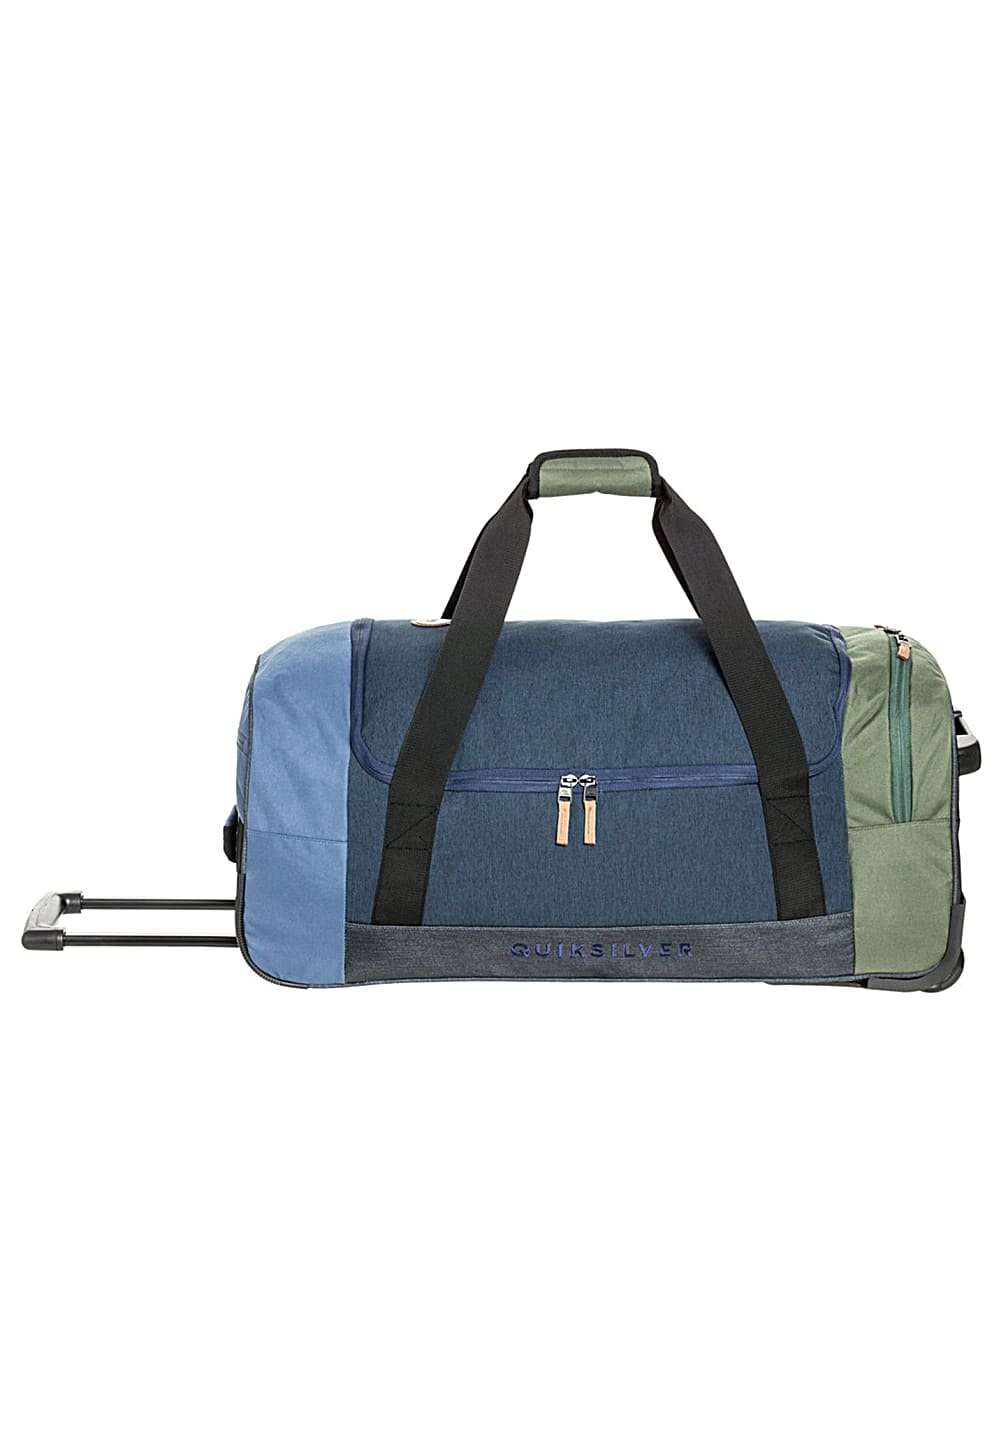 77283ffa4f Quiksilver New Centurion - Gym Bag for Men - Blue - Planet Sports